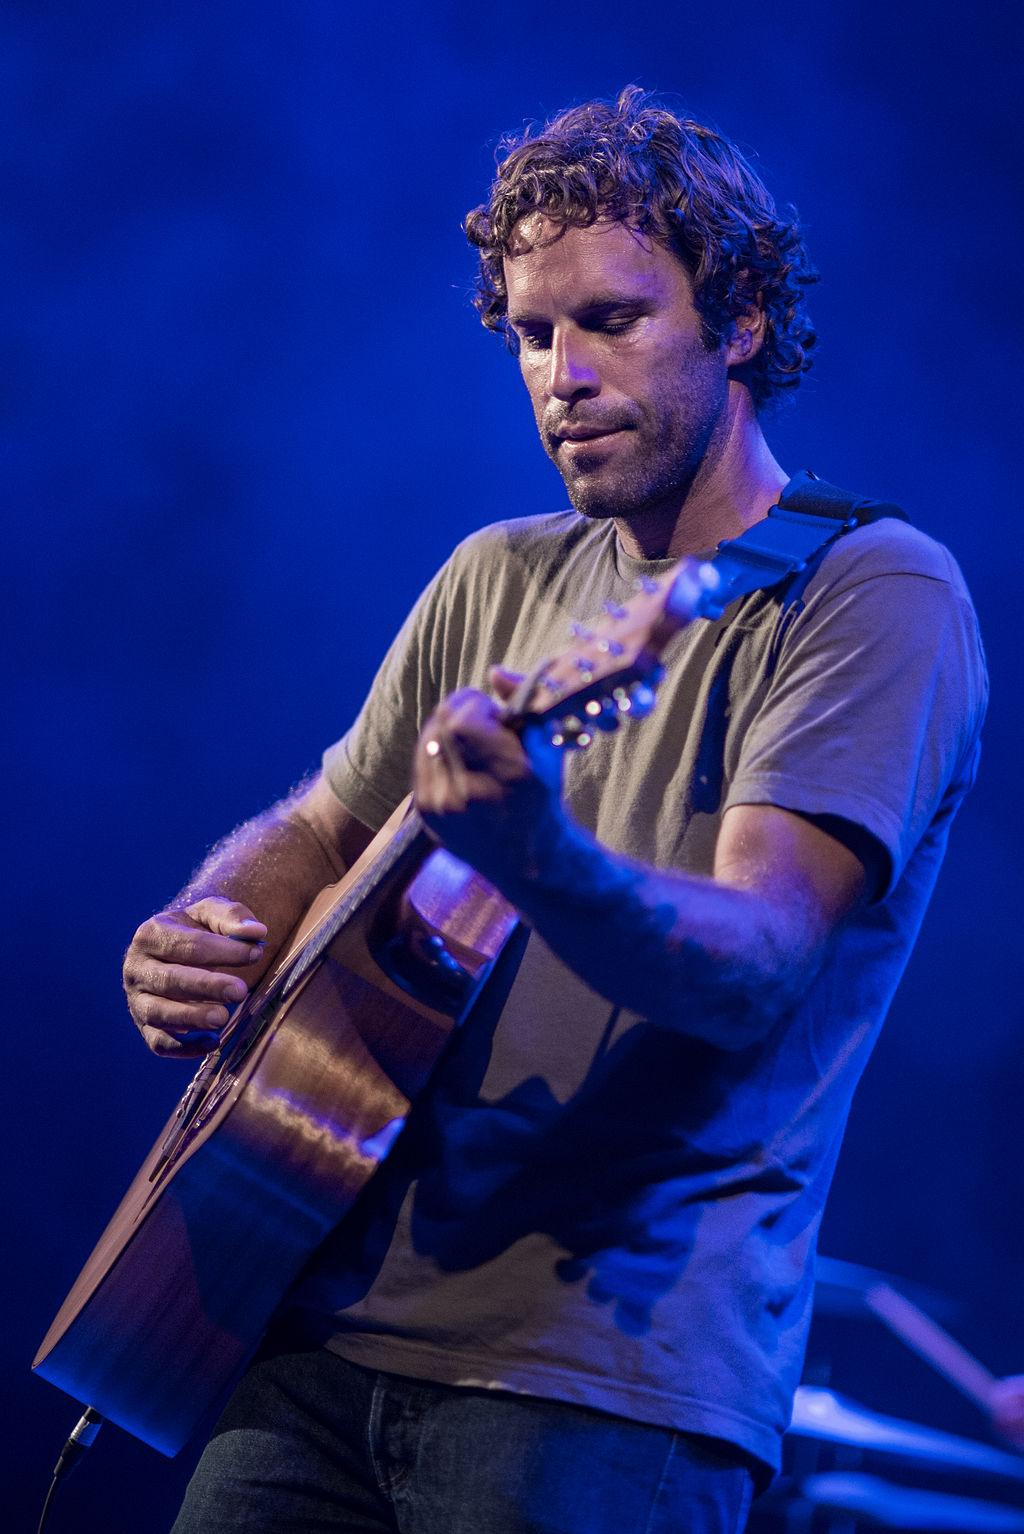 Jack Johnson performing at the Waikiki Shell in Honolulu Hawaii